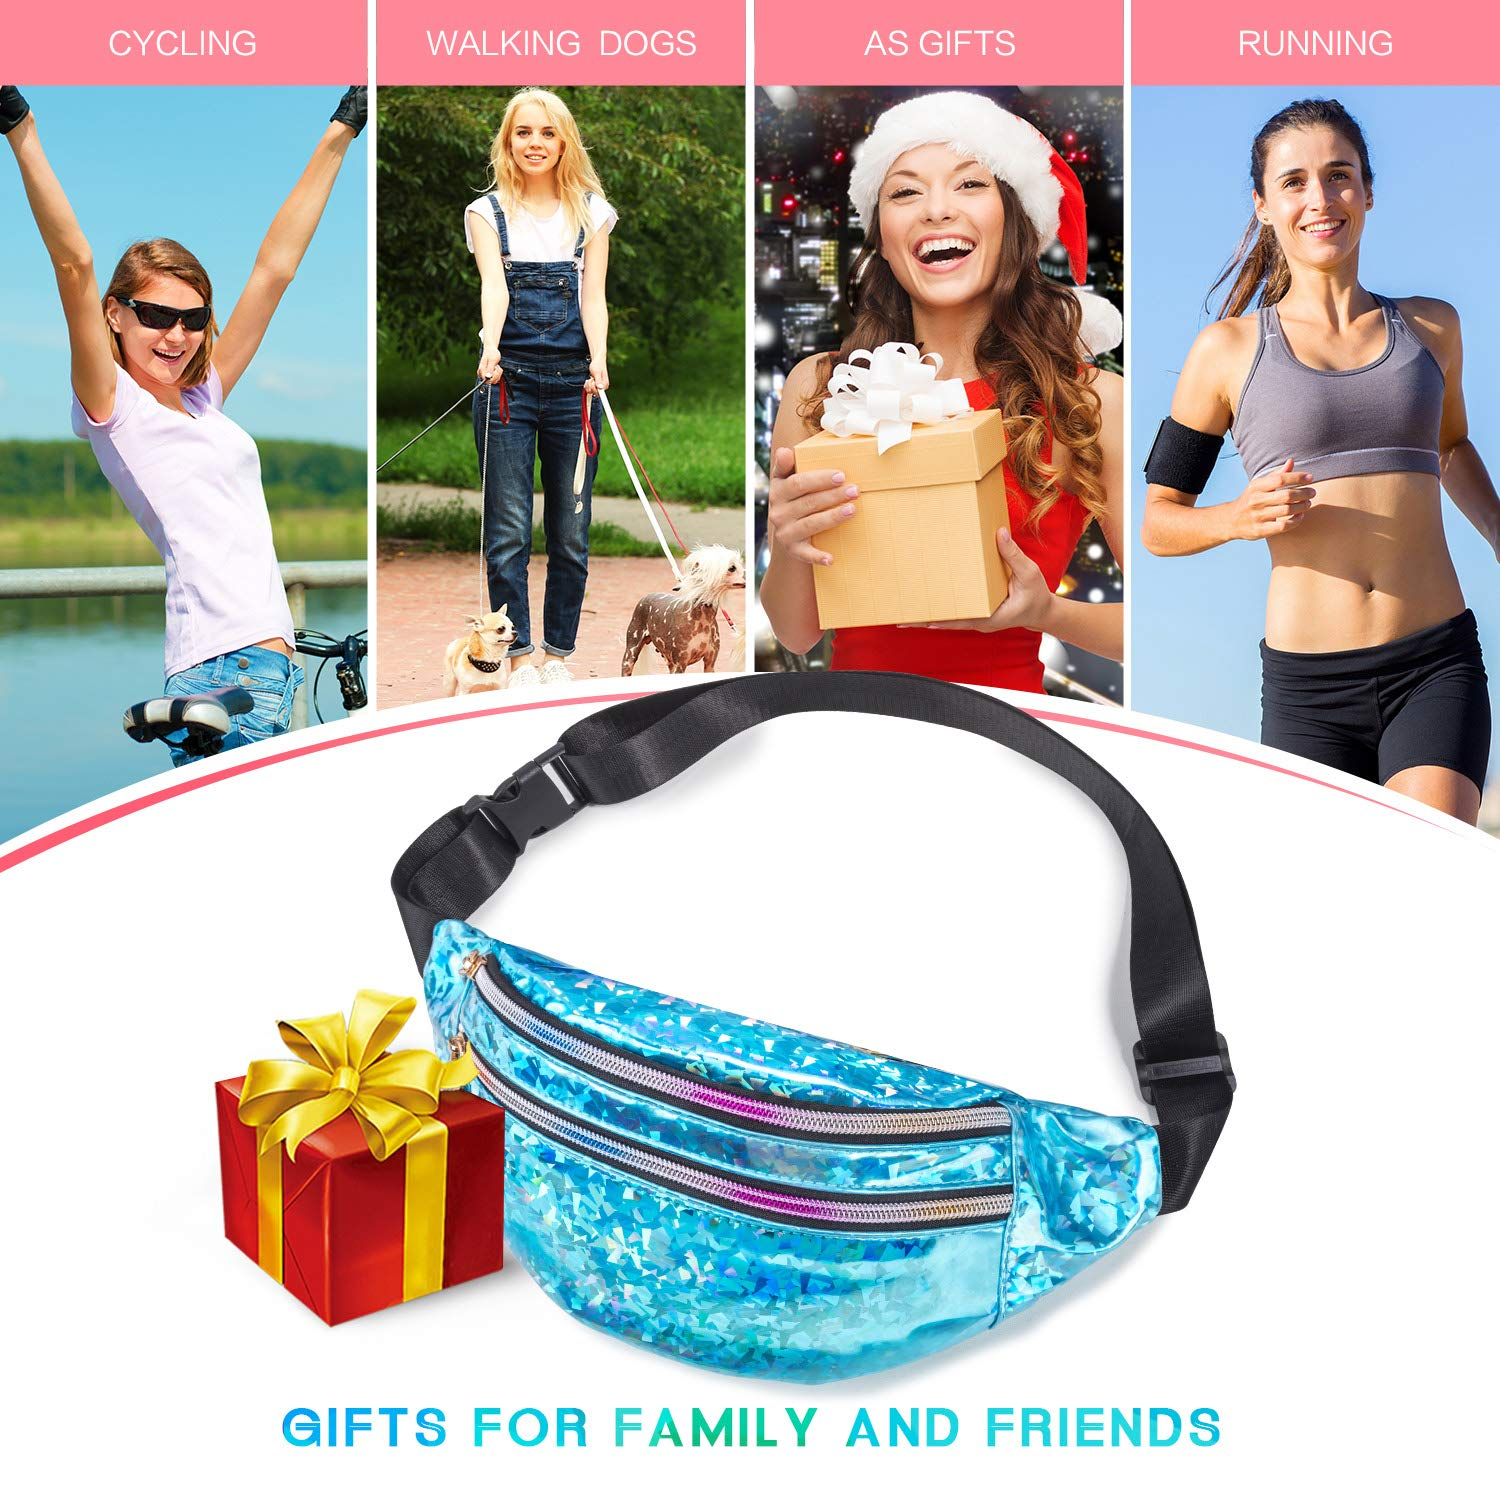 Fashion Waterproof Waist Pack with 3 Pouches Adjustable Strap Shiny Causal Bags Cute Bum Bag Hip Sacks for Travel Festival Hiking Rave Fanny Pack Belt Bag Holographic Fanny Packs for Women Men Kids